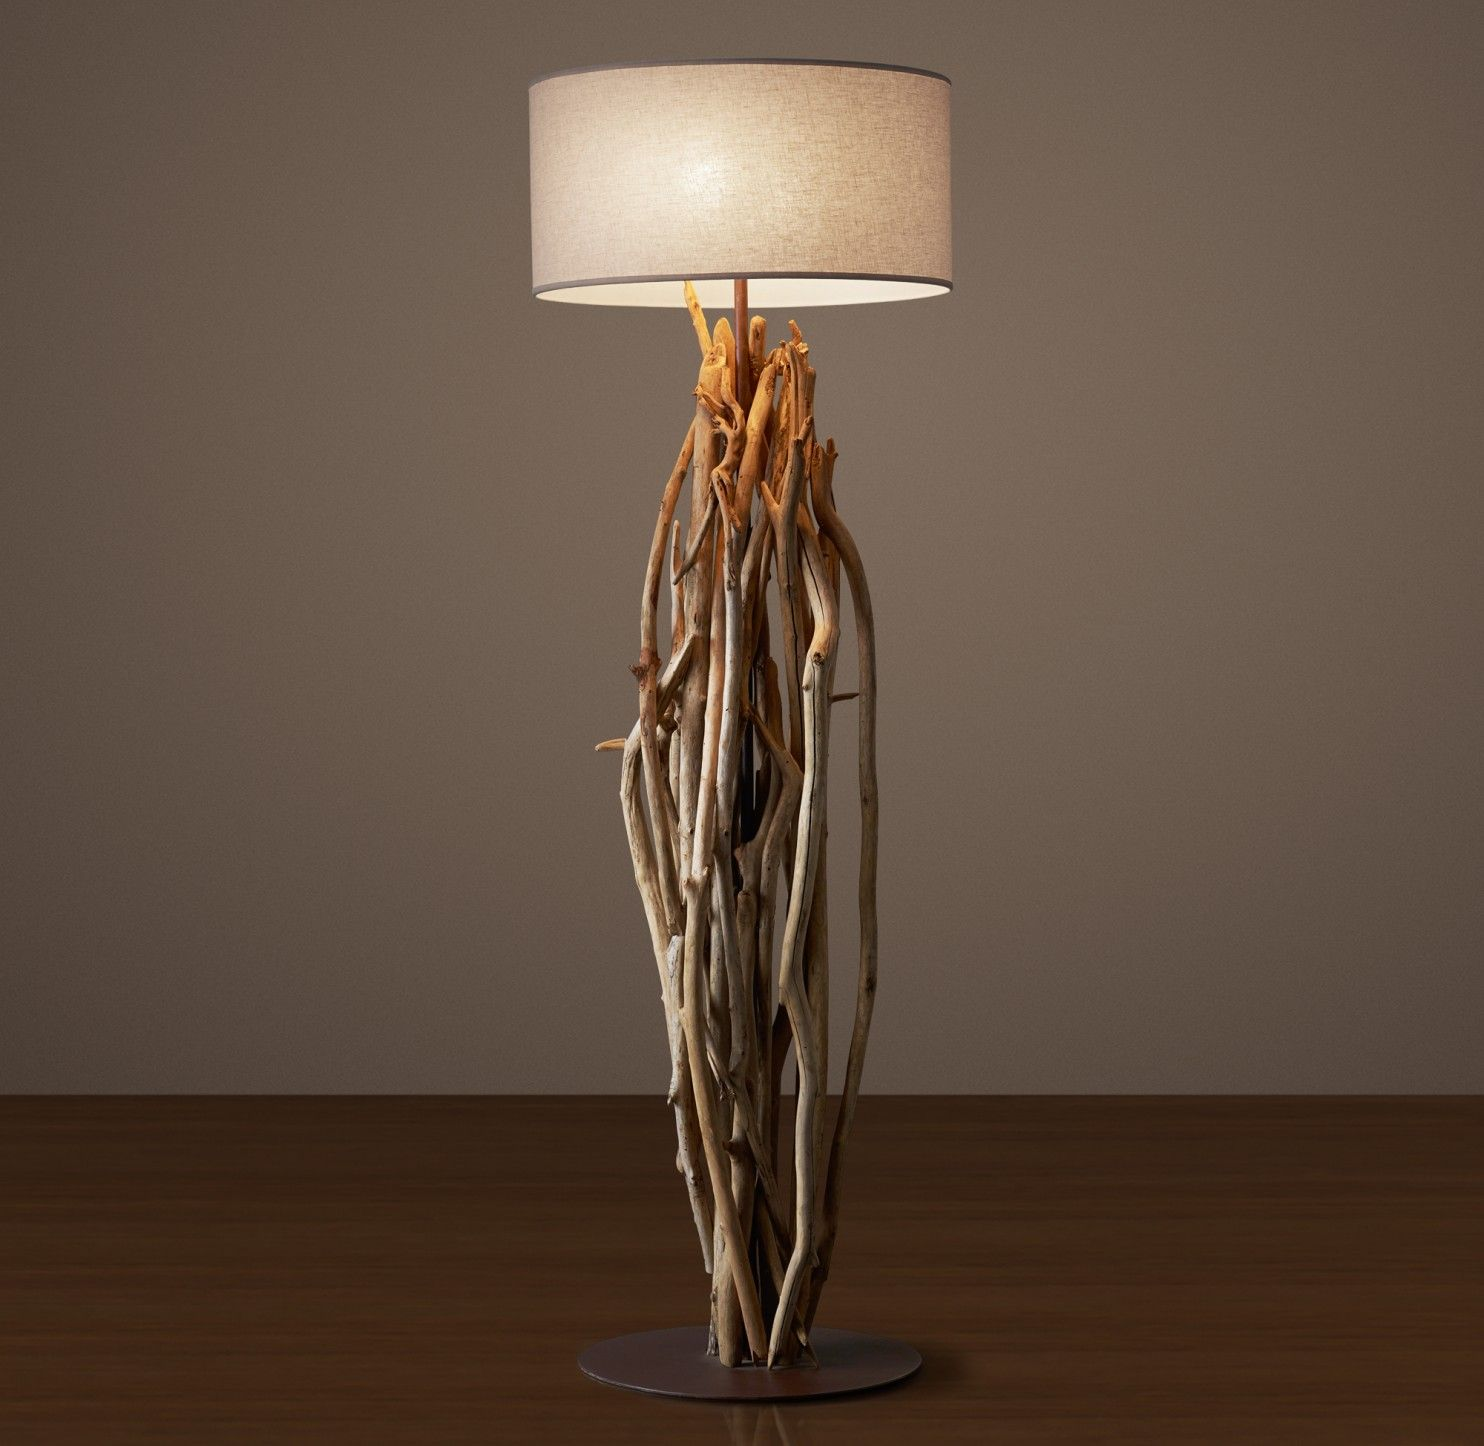 Stylish Driftwood Floor Lamp For Your Decor And Lighting Ideas: Favorite  Driftwood Floor Lamp |